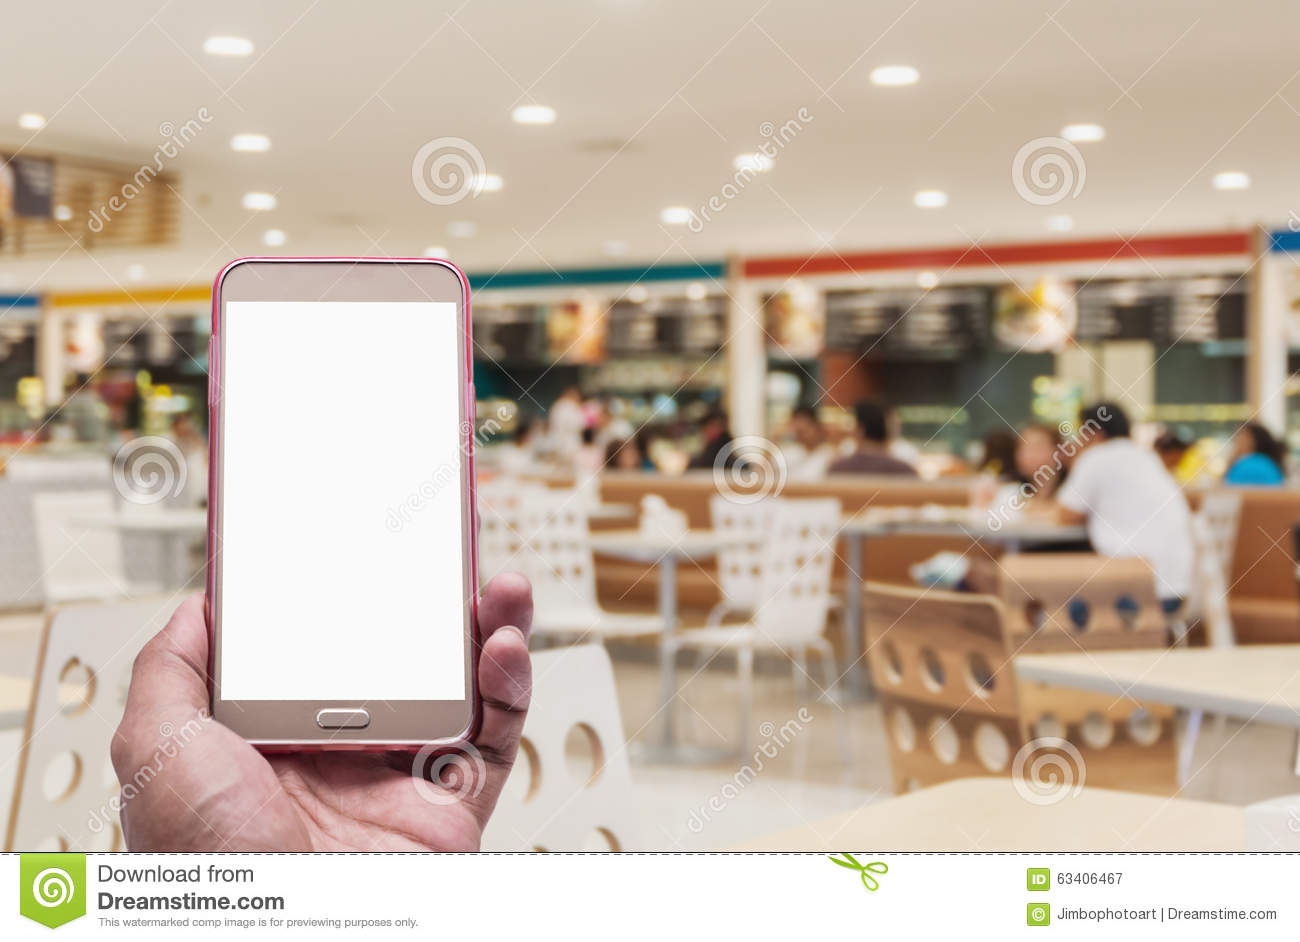 Hand With Smartphone On Blurred In Food Court Background